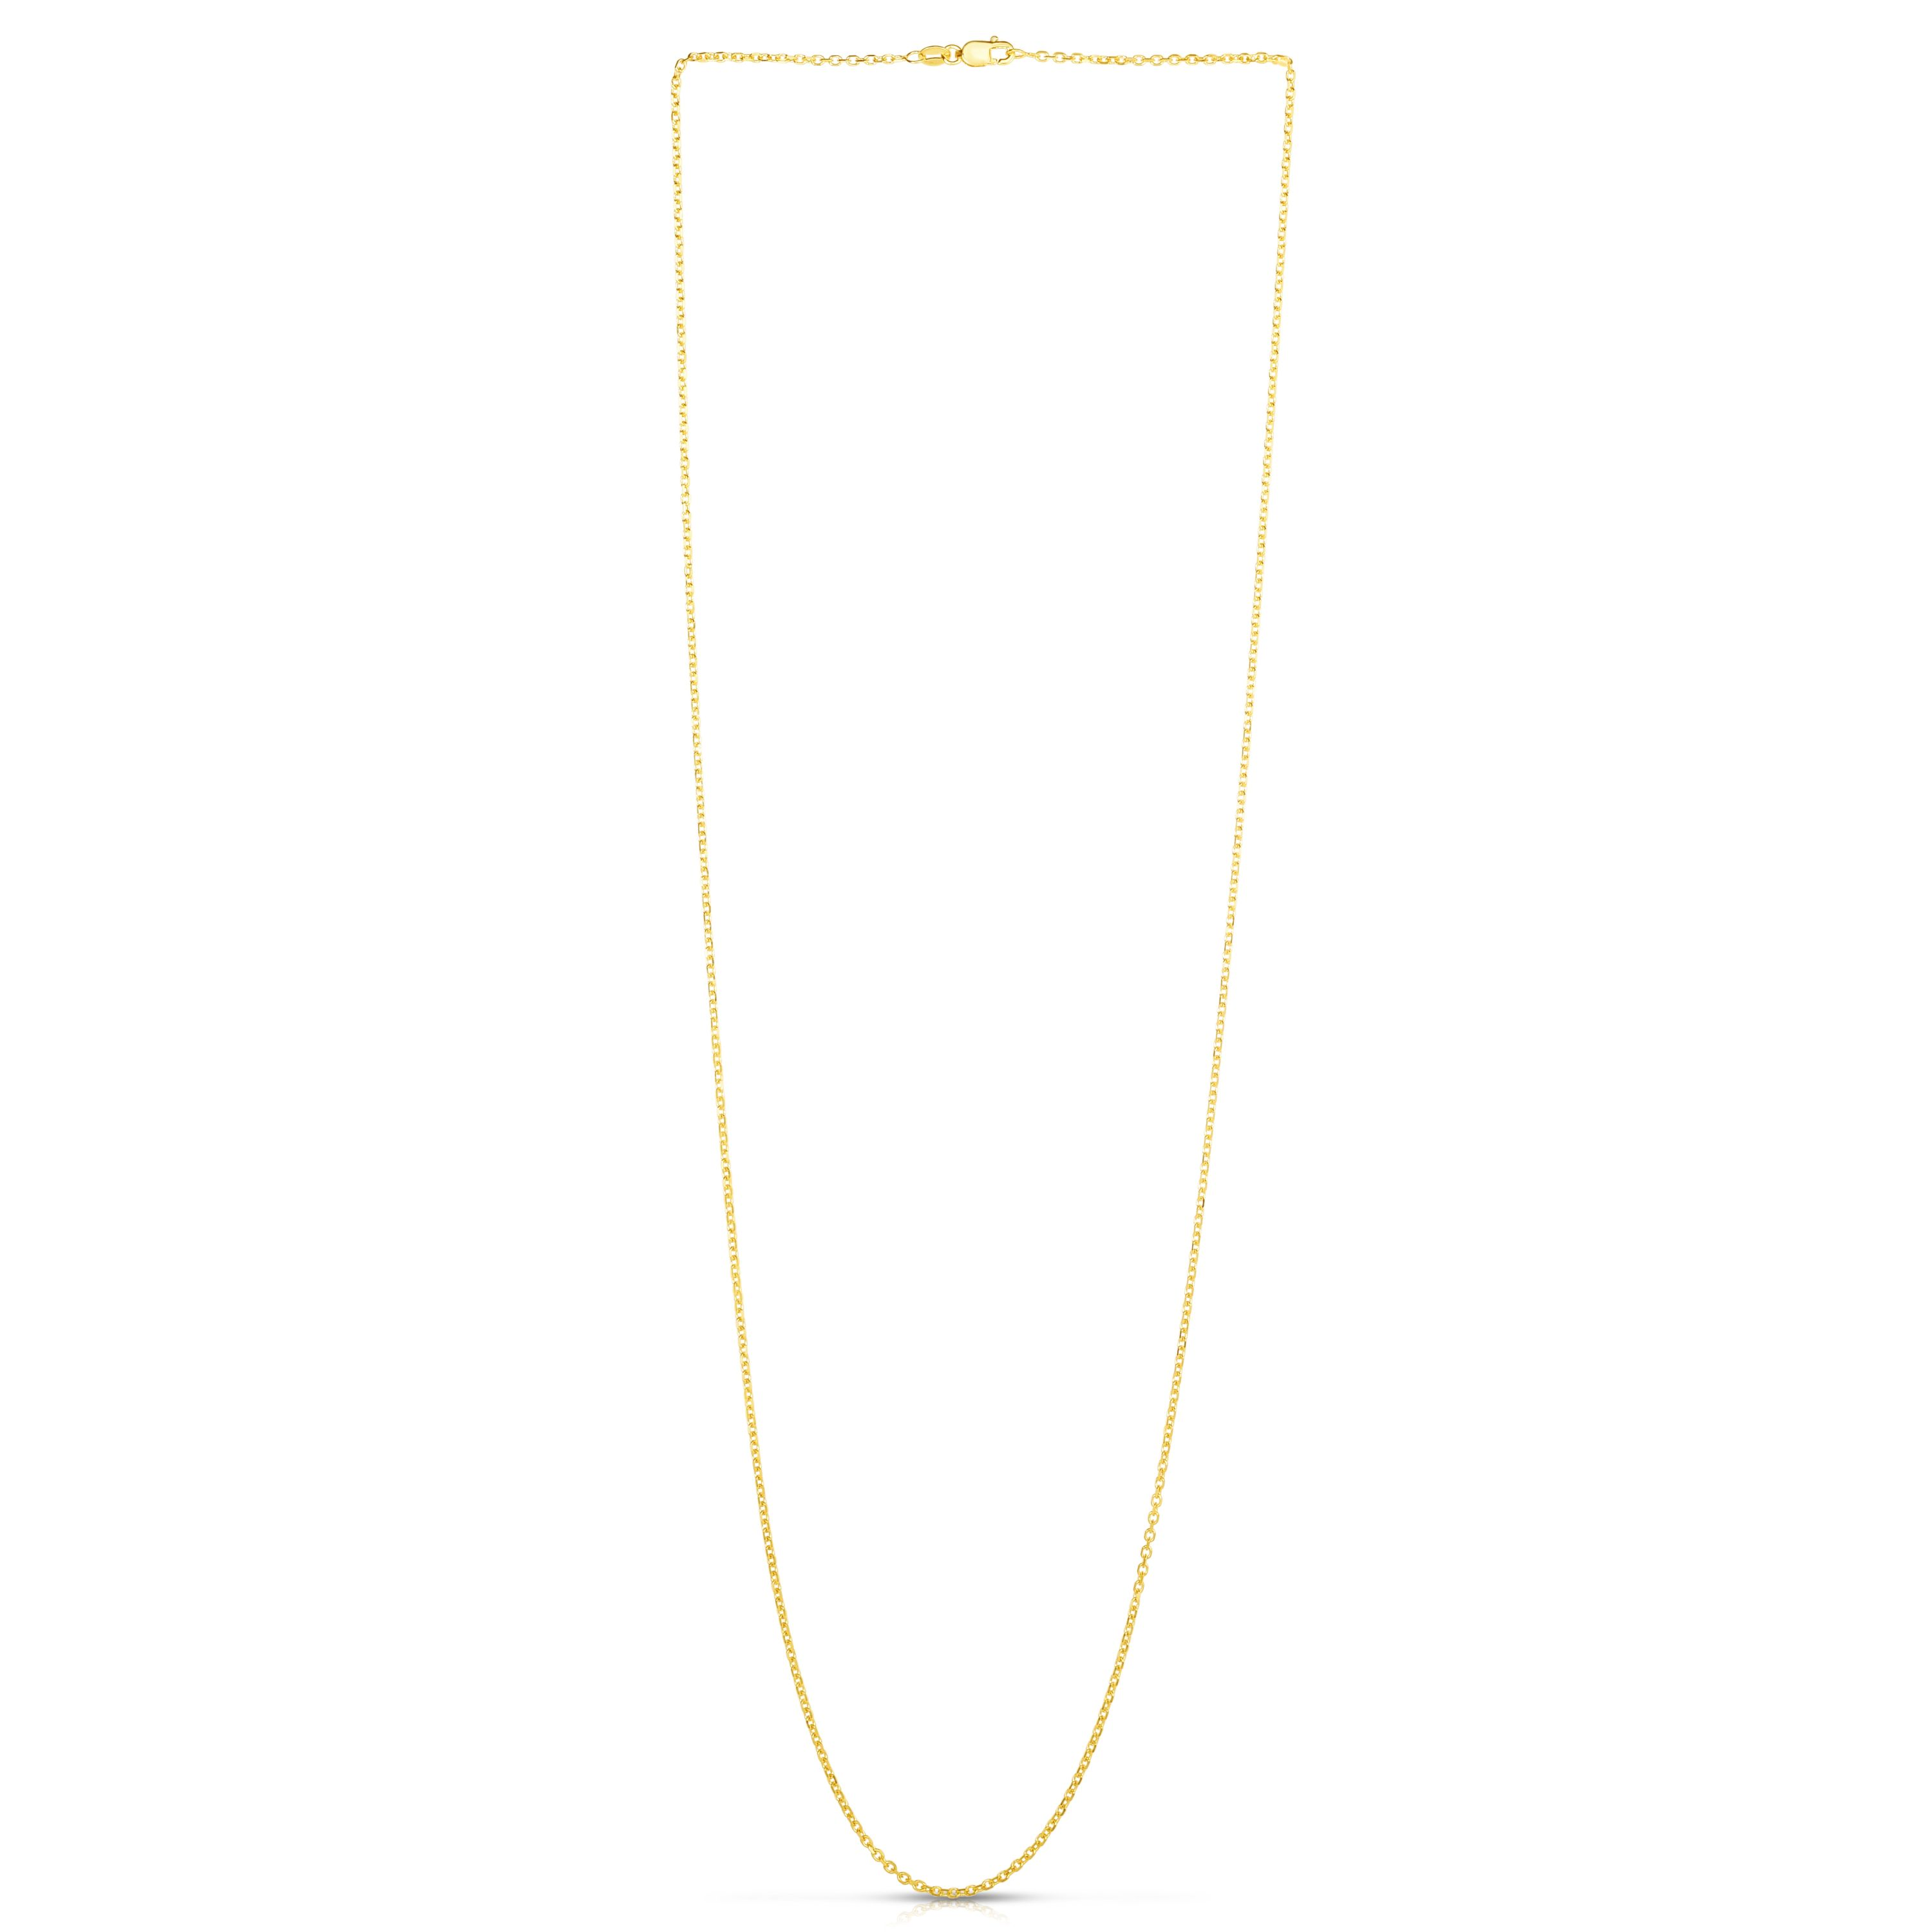 14kt 30 inches Yellow Gold 1.5mm Diamond Cut Cable Link Chain with Lobster Clasp